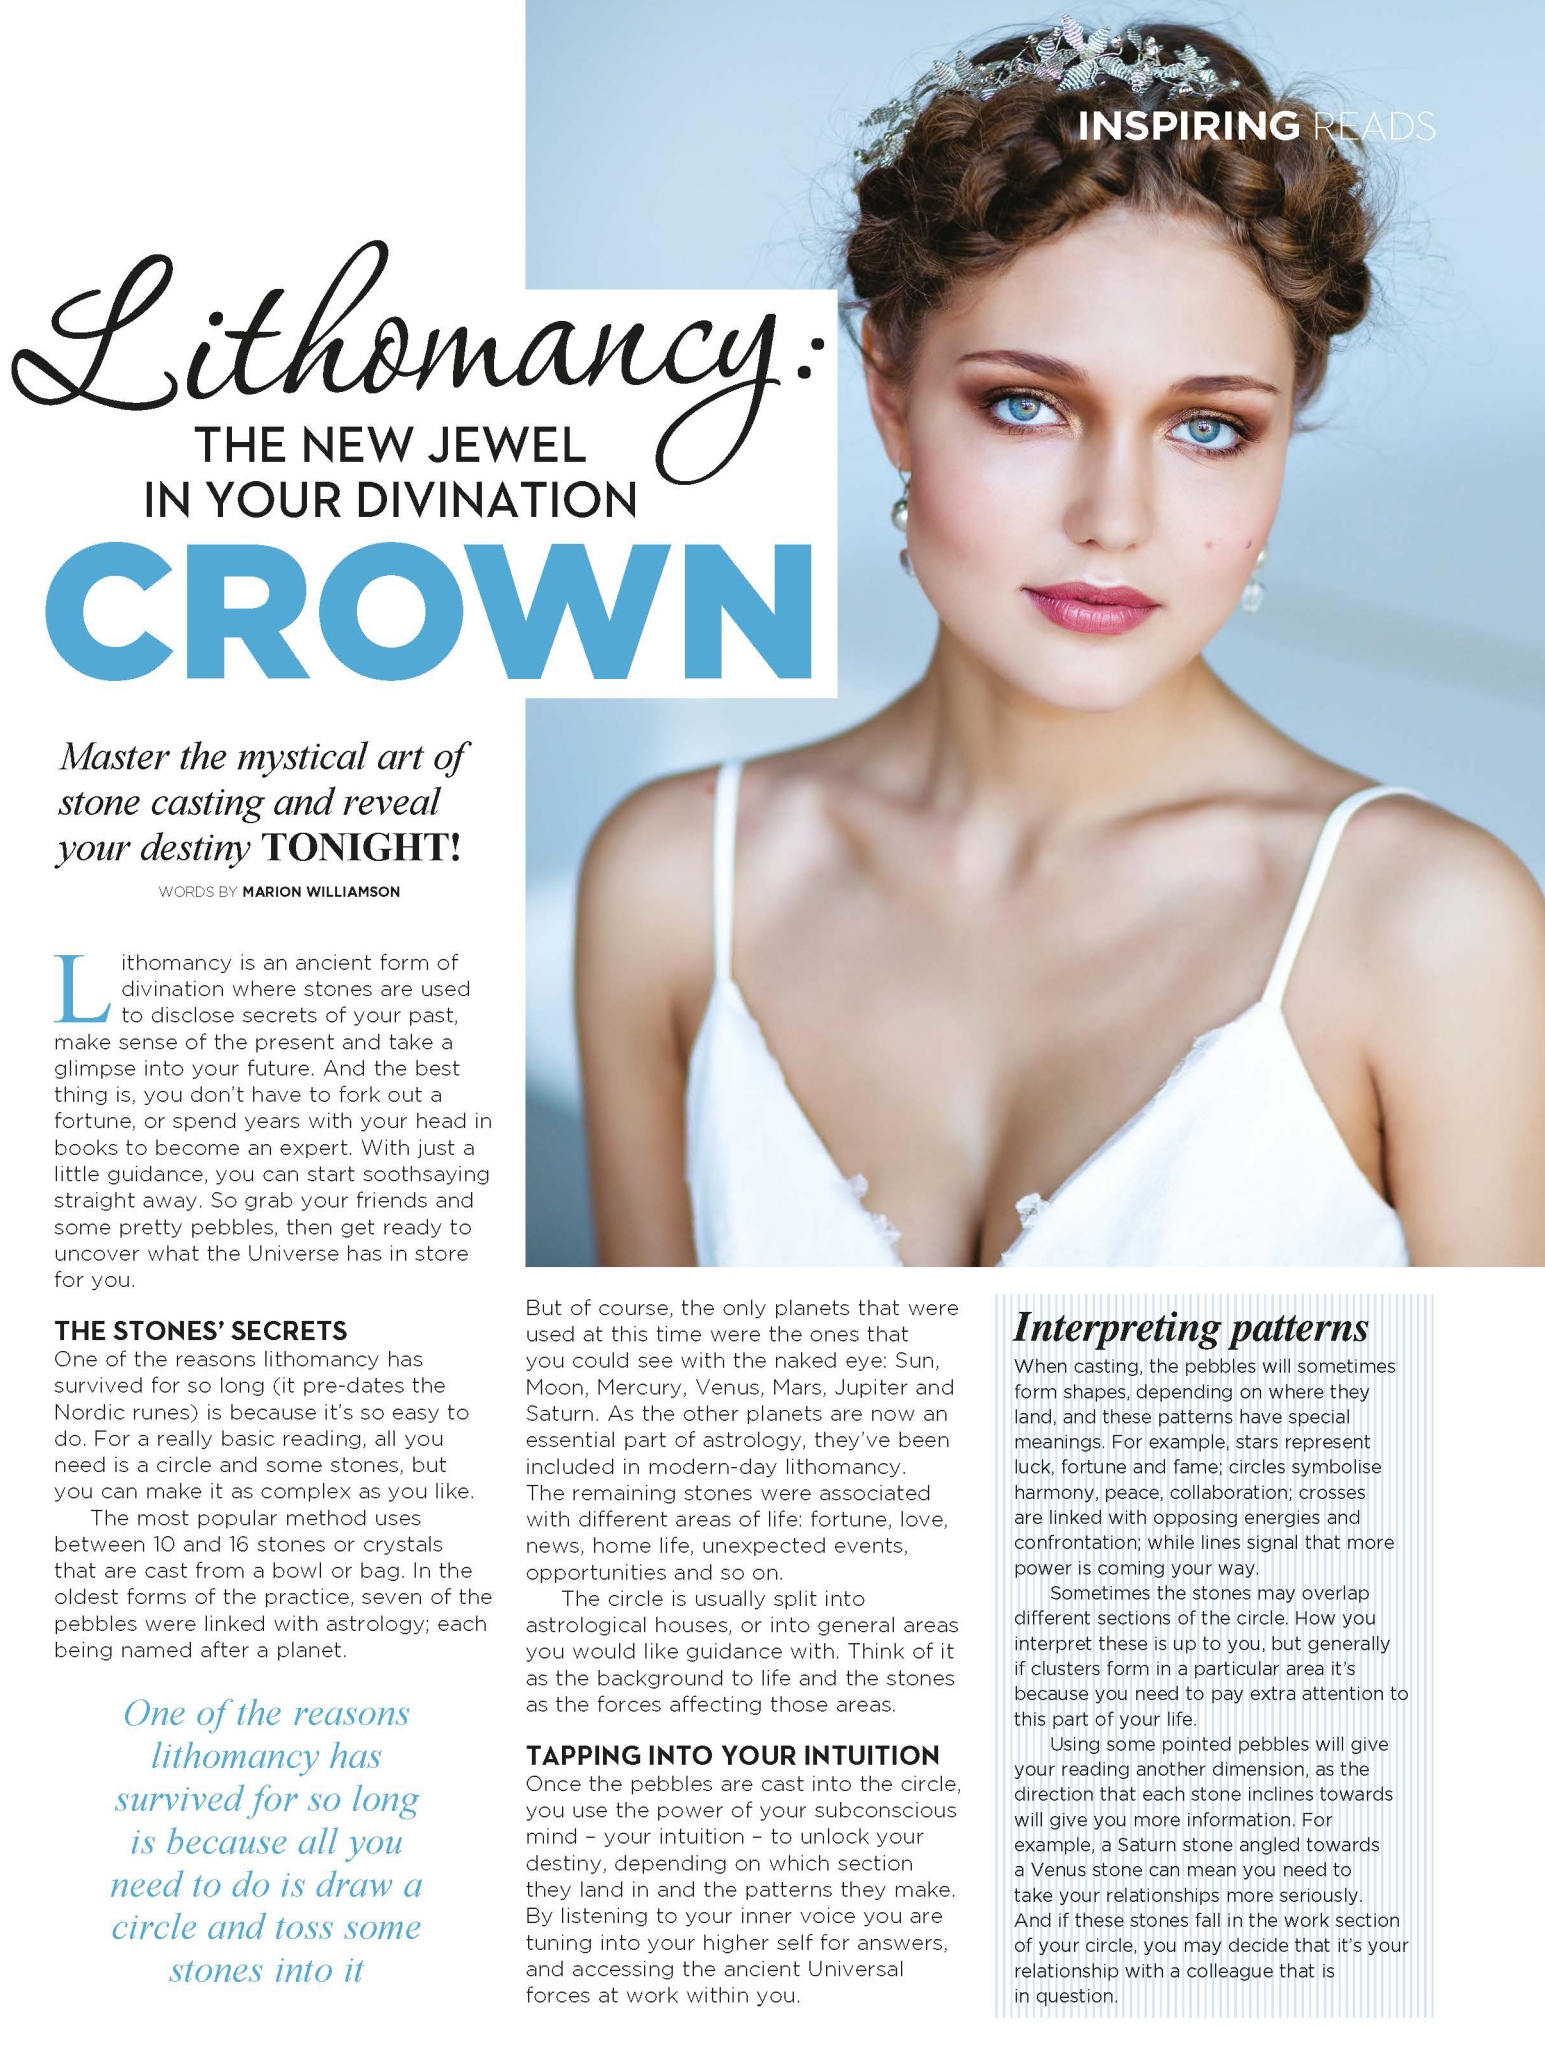 Soul & Spirit November 2015 - Lithomancy 1